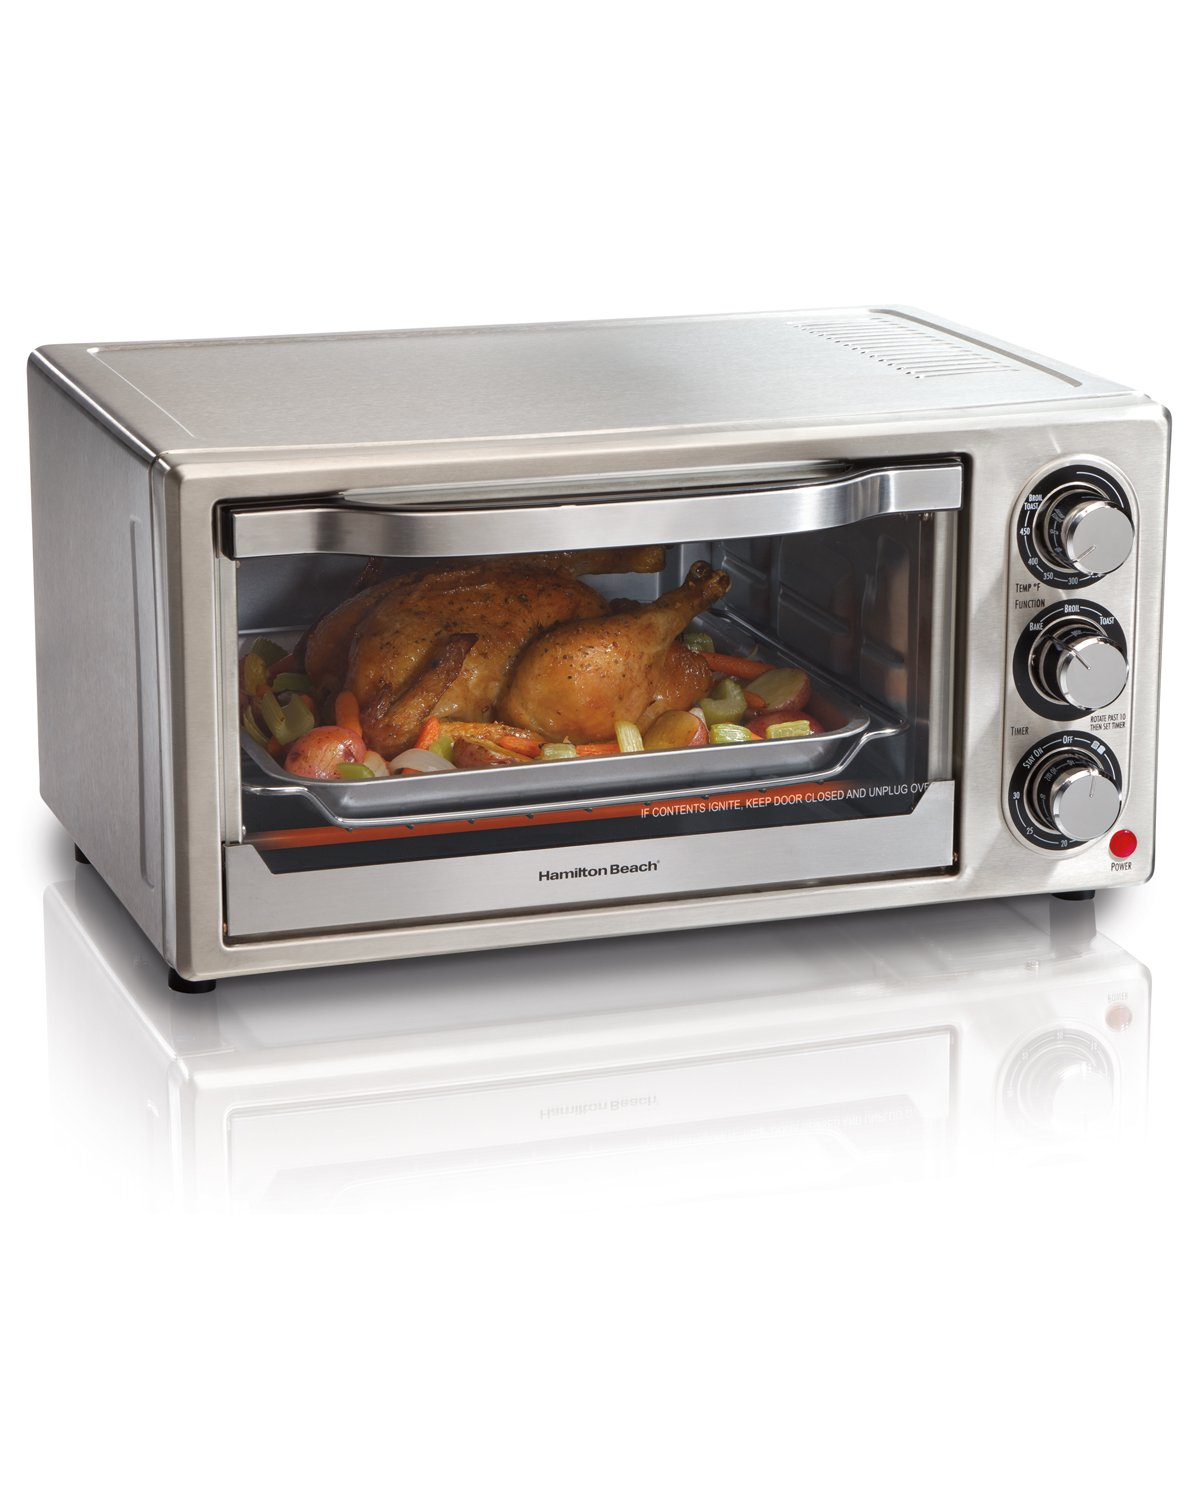 Hamilton Beach 31511 Stainless Steel 6-Slice Toaster Oven